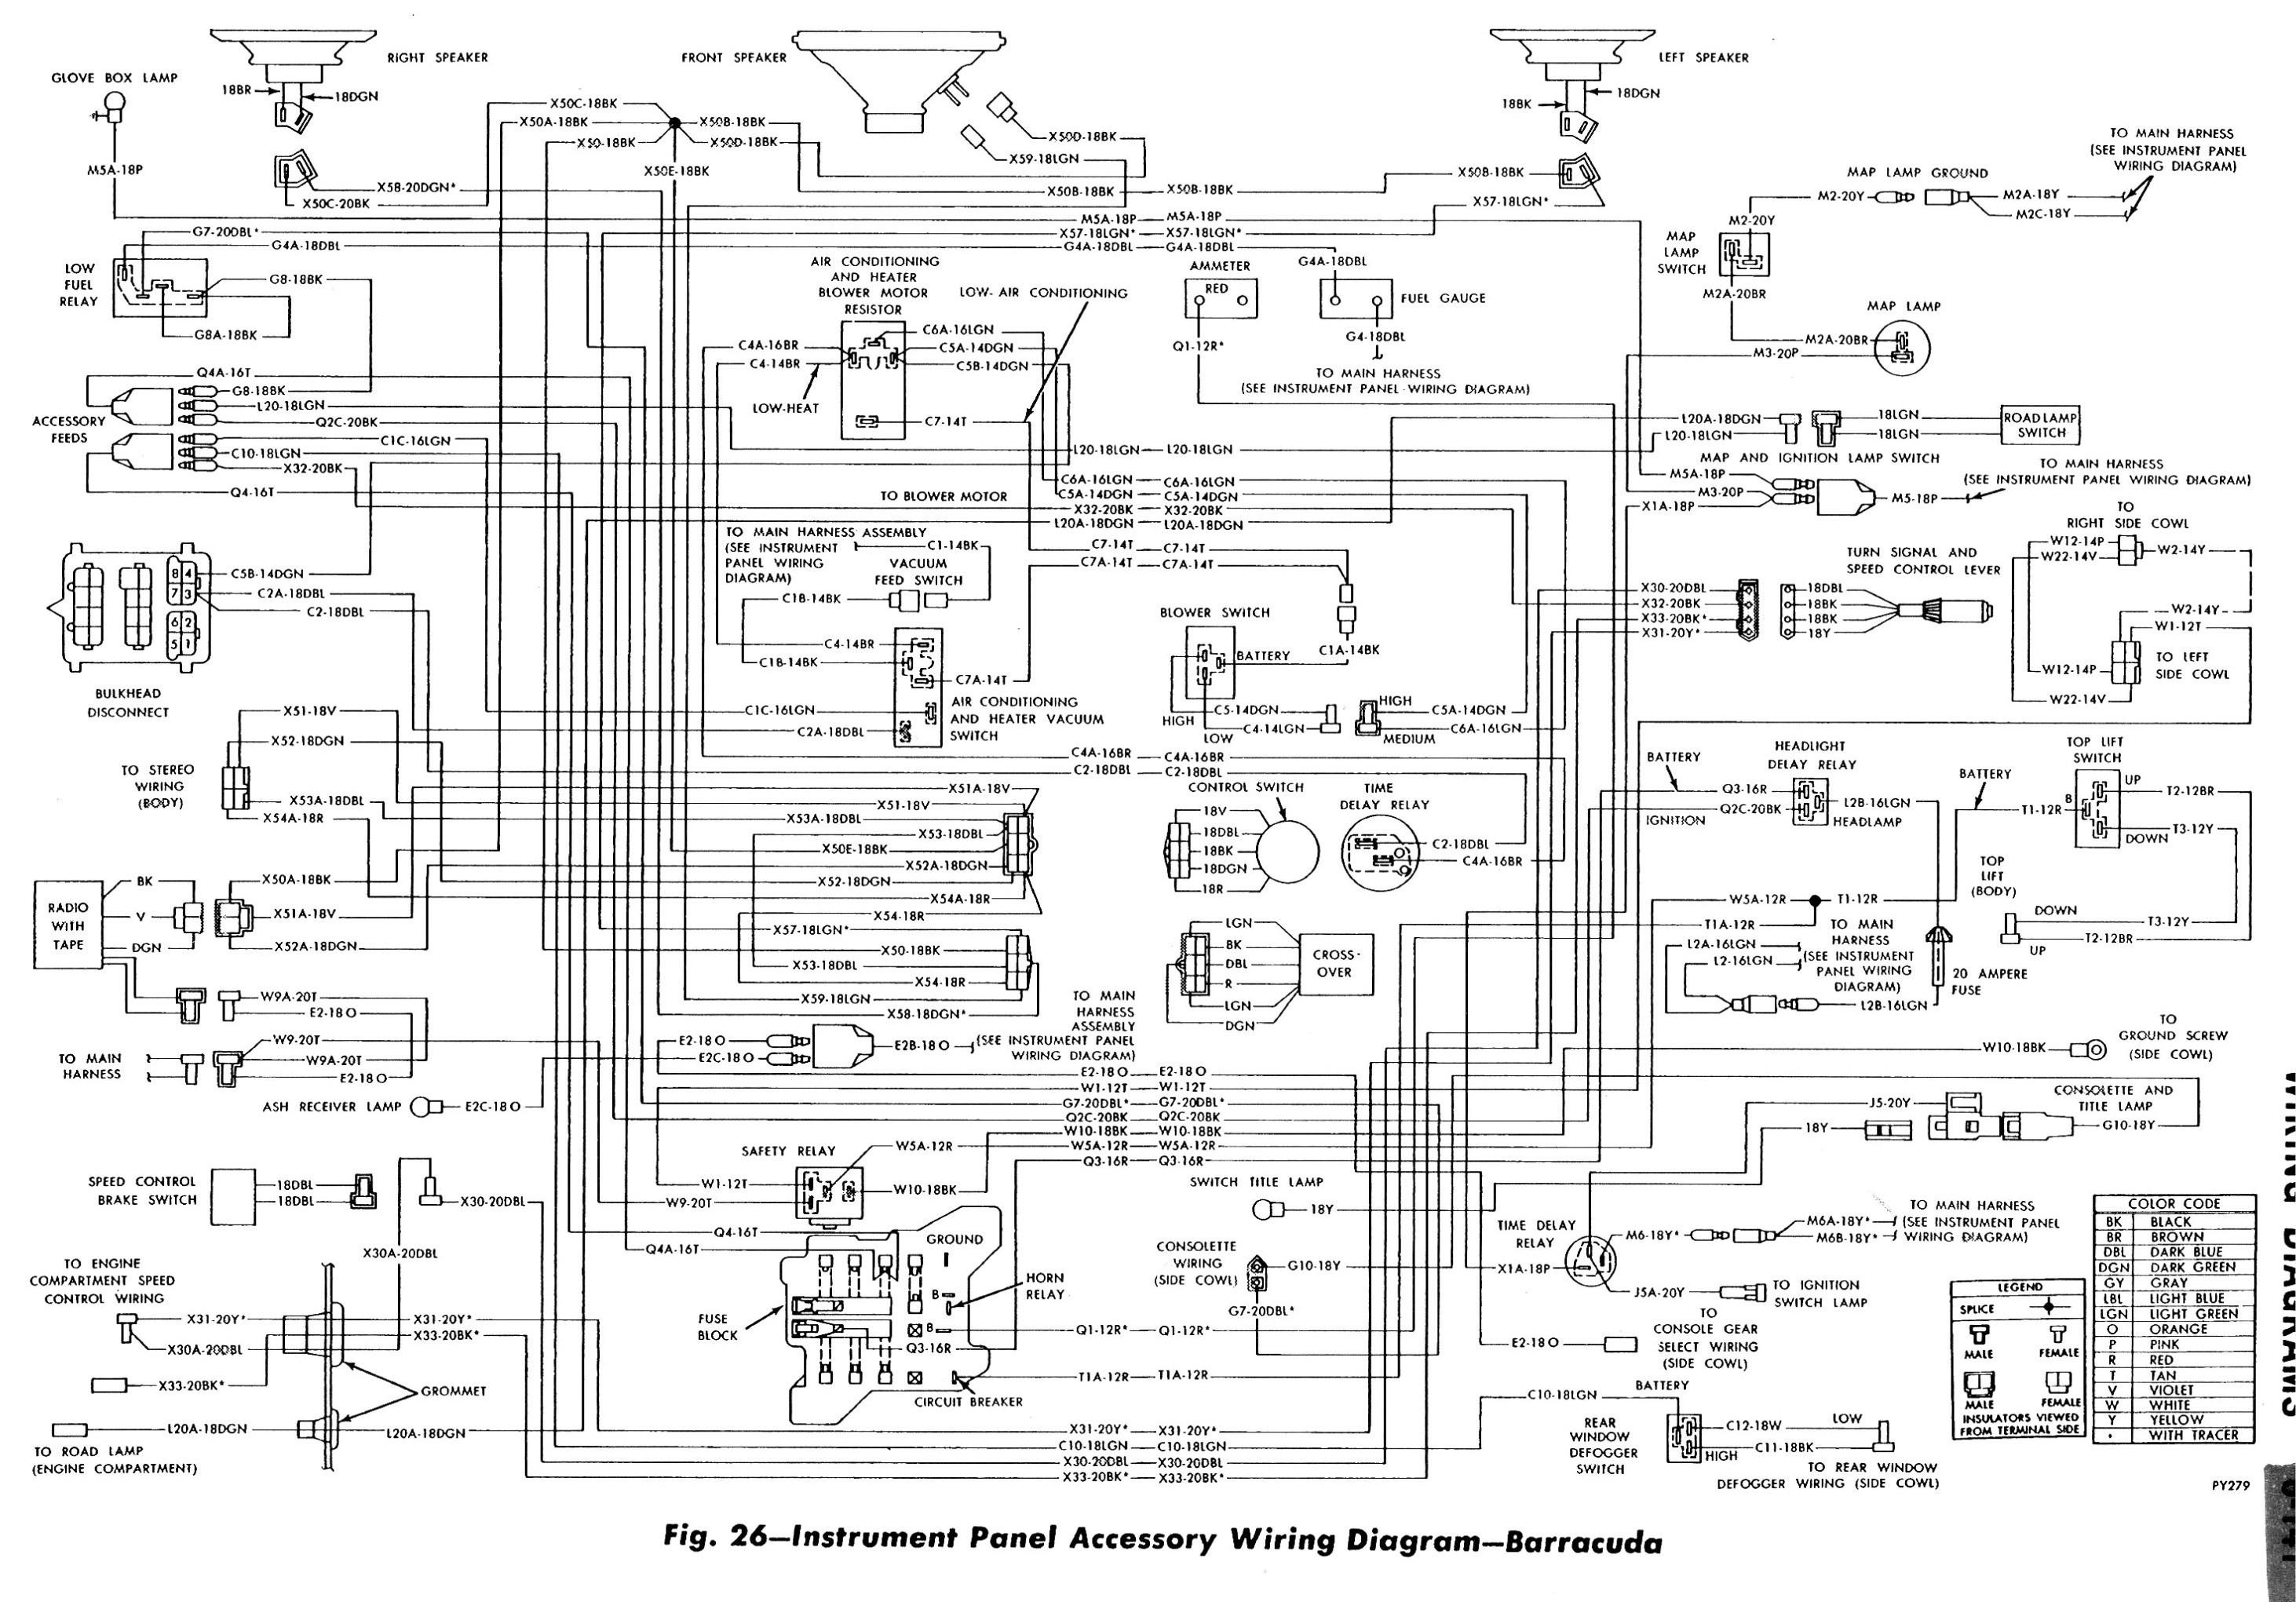 1974 plymouth barracuda wiring diagram barracuda free printable wiring diagrams